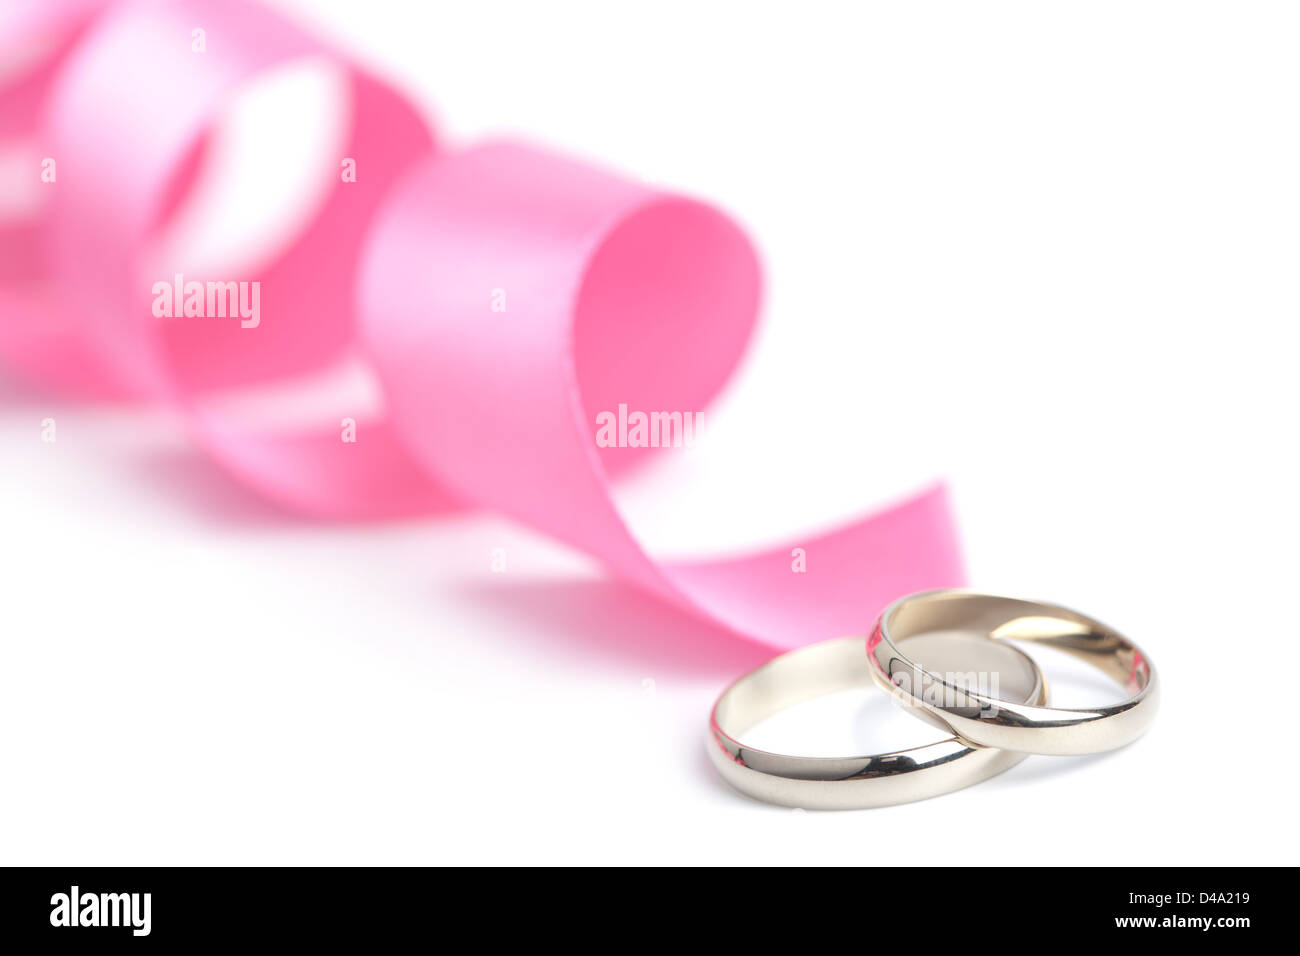 Wedding Rings Stock Photos & Wedding Rings Stock Images - Alamy